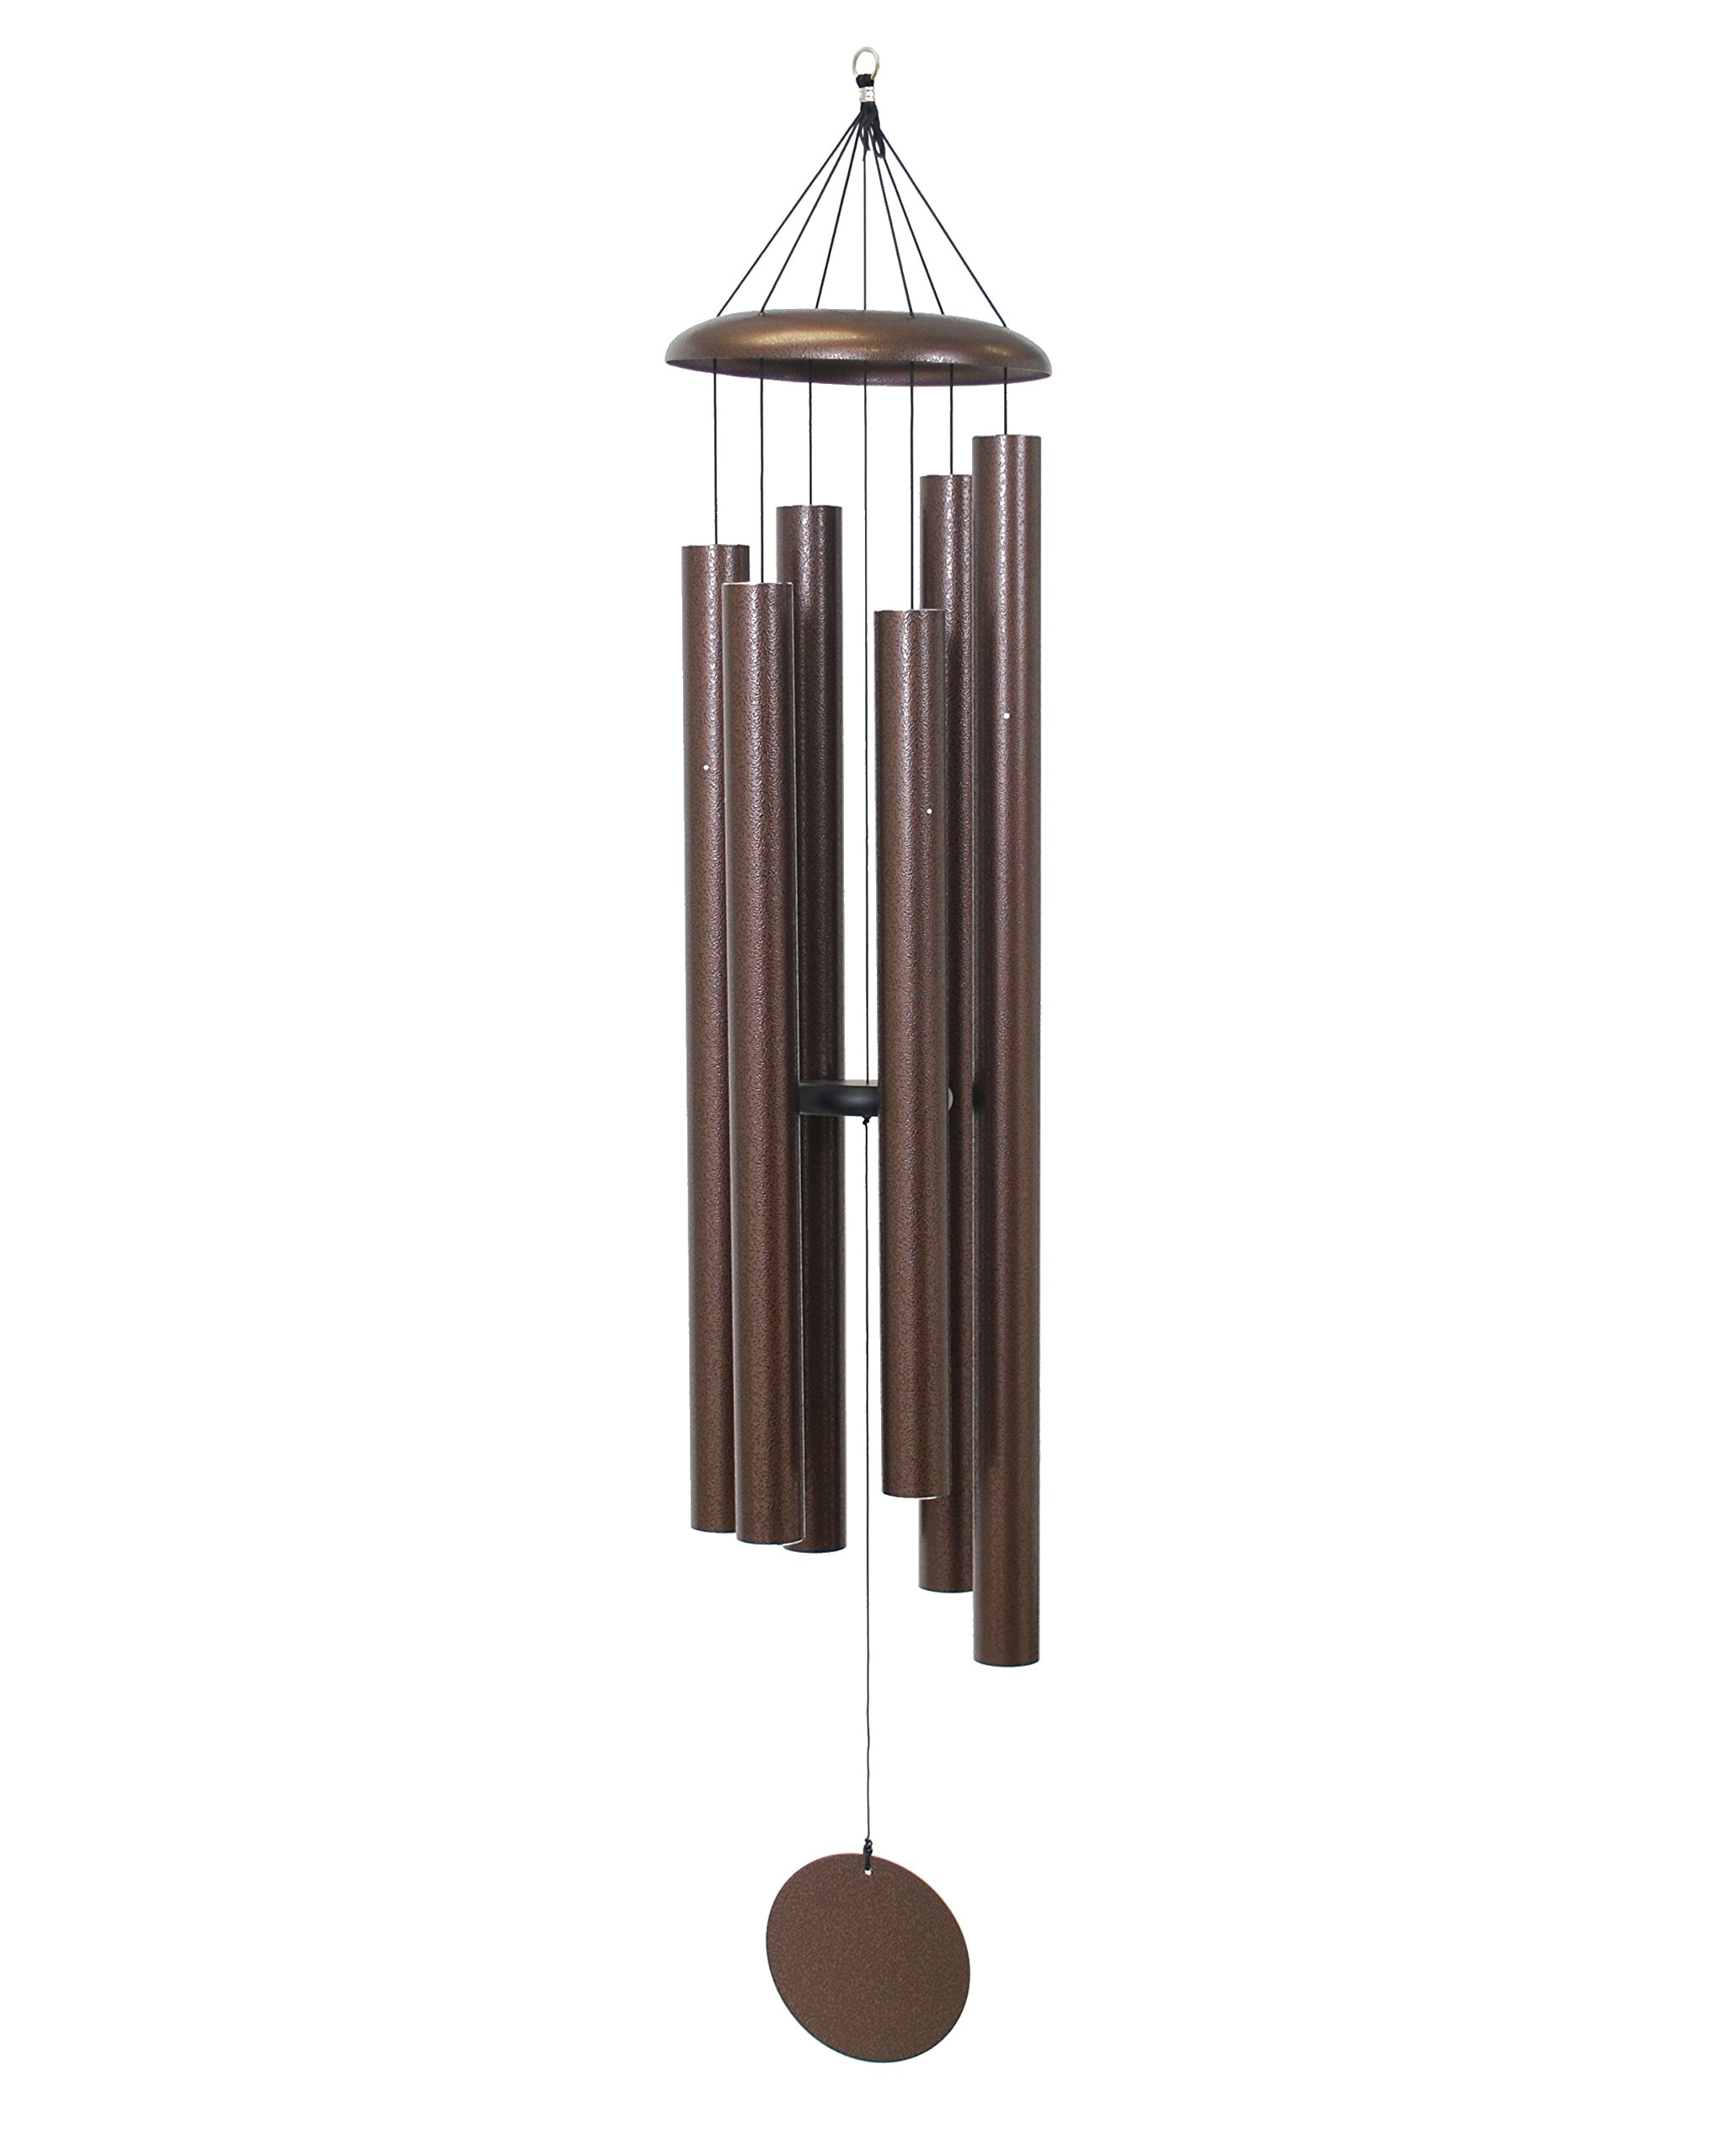 Corinthian Bells 65-inch Windchime, Copper Vein by Corinthian Bells